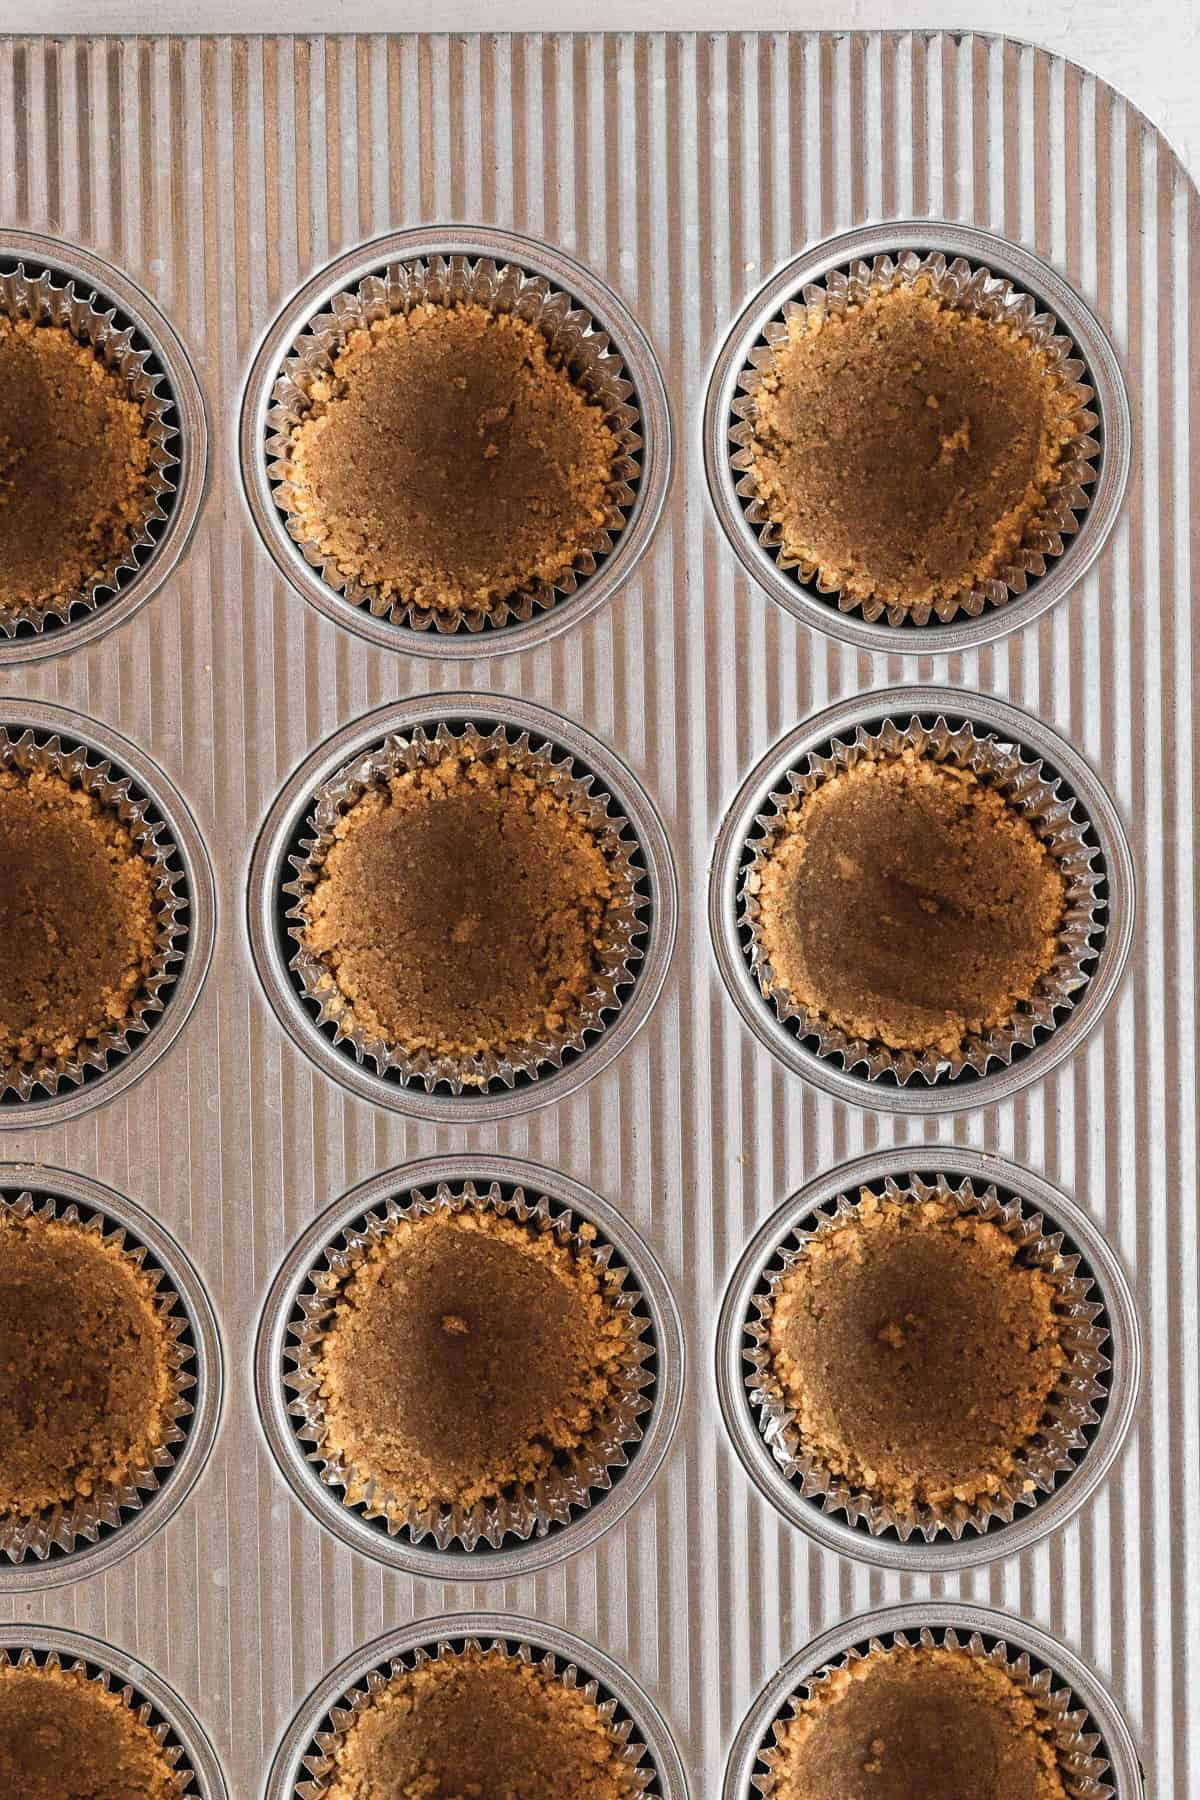 graham cracker crusts in the muffin tin after baking